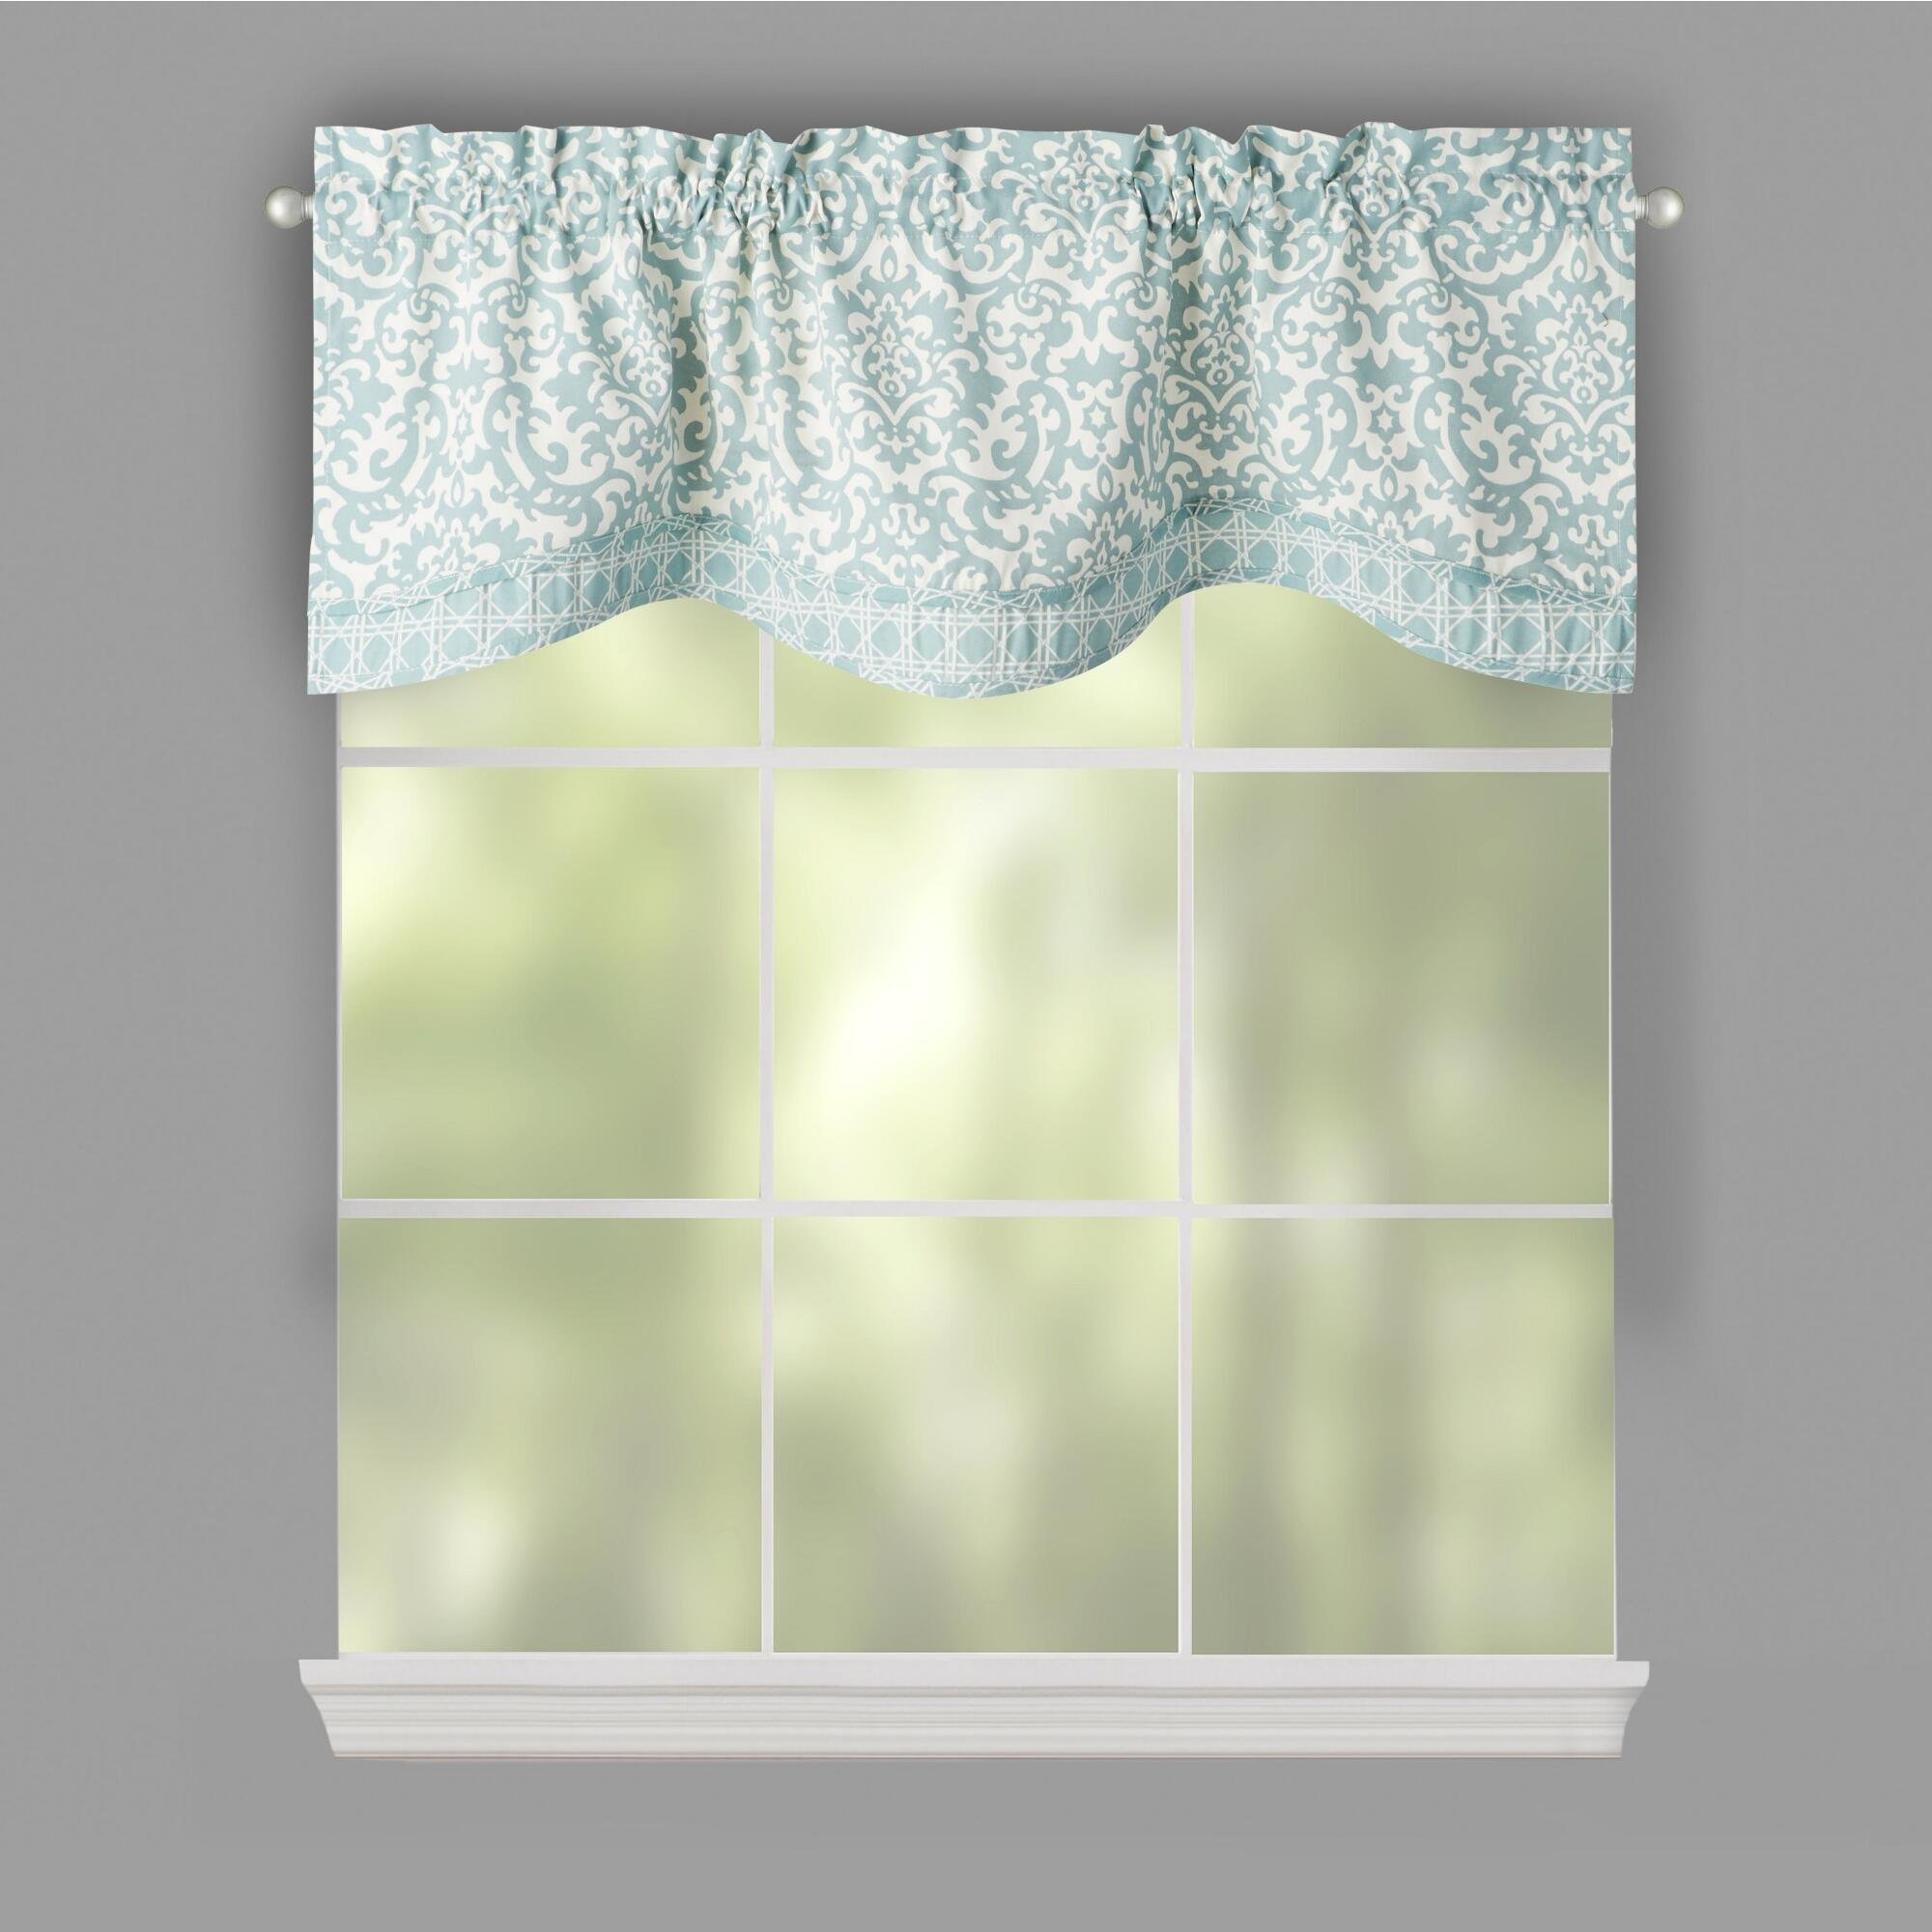 Traditions By Waverly Spa Duncan Kristy Window Valance, 52-inch X 16-inch